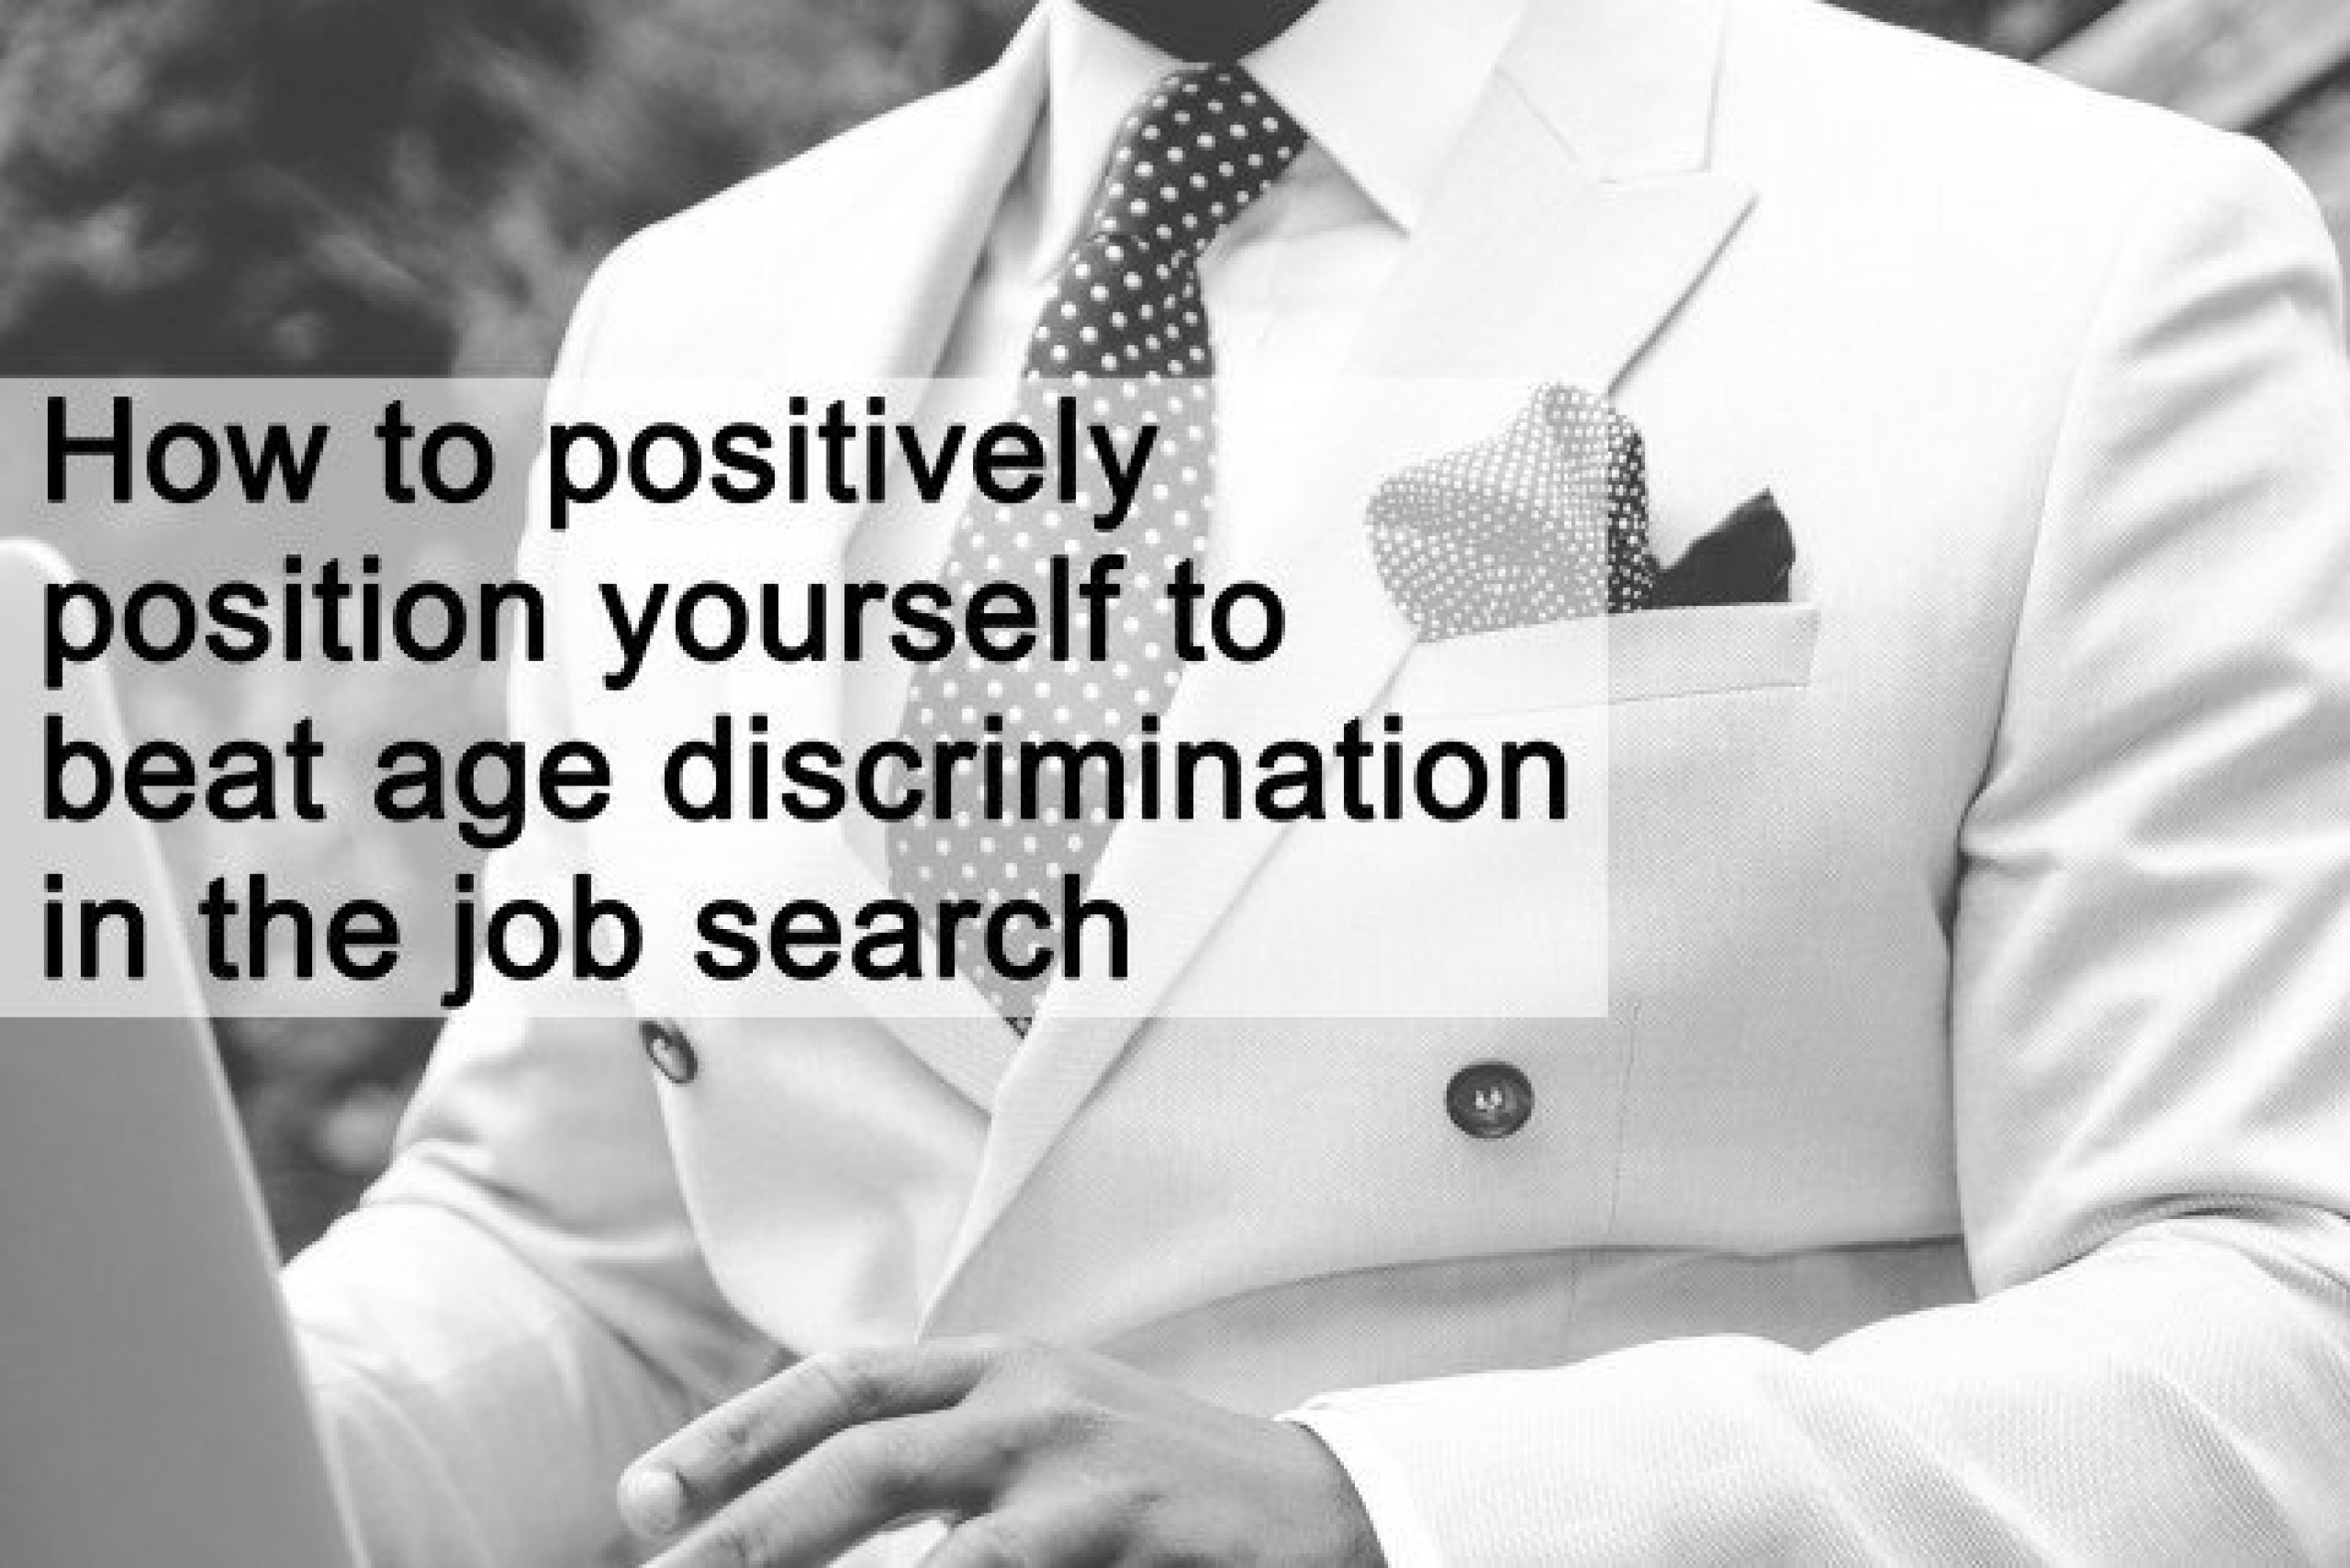 How to positively position yourself to beat age discrimination in the job search